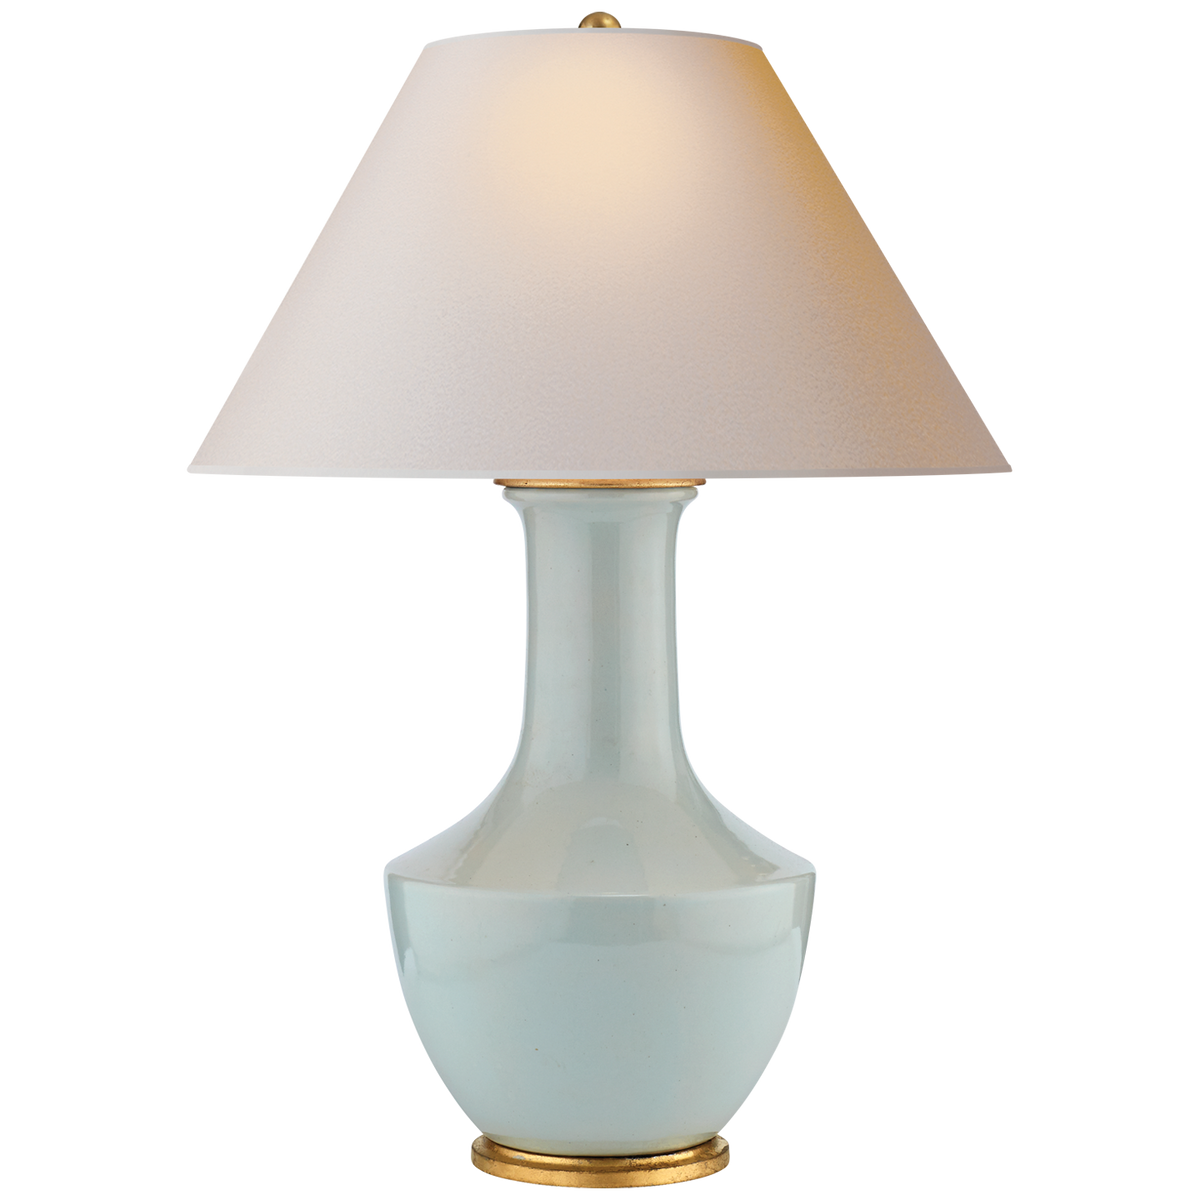 Lambay Table Lamp, Ice Blue Porcelain